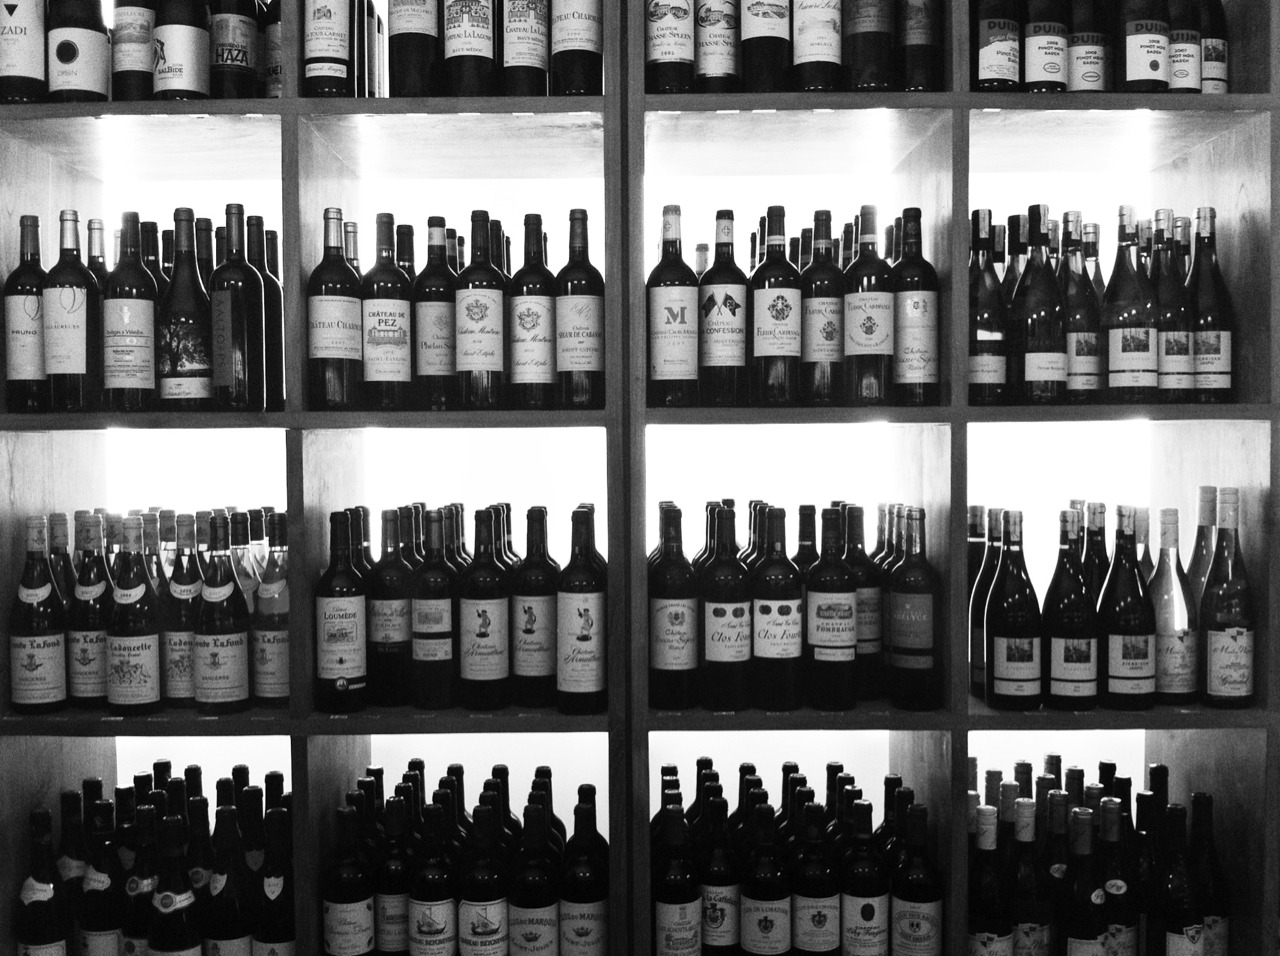 Lots and lots of wine. Too bad I don't really like it that much.  Taken with Click! App, processed with Snapseed.